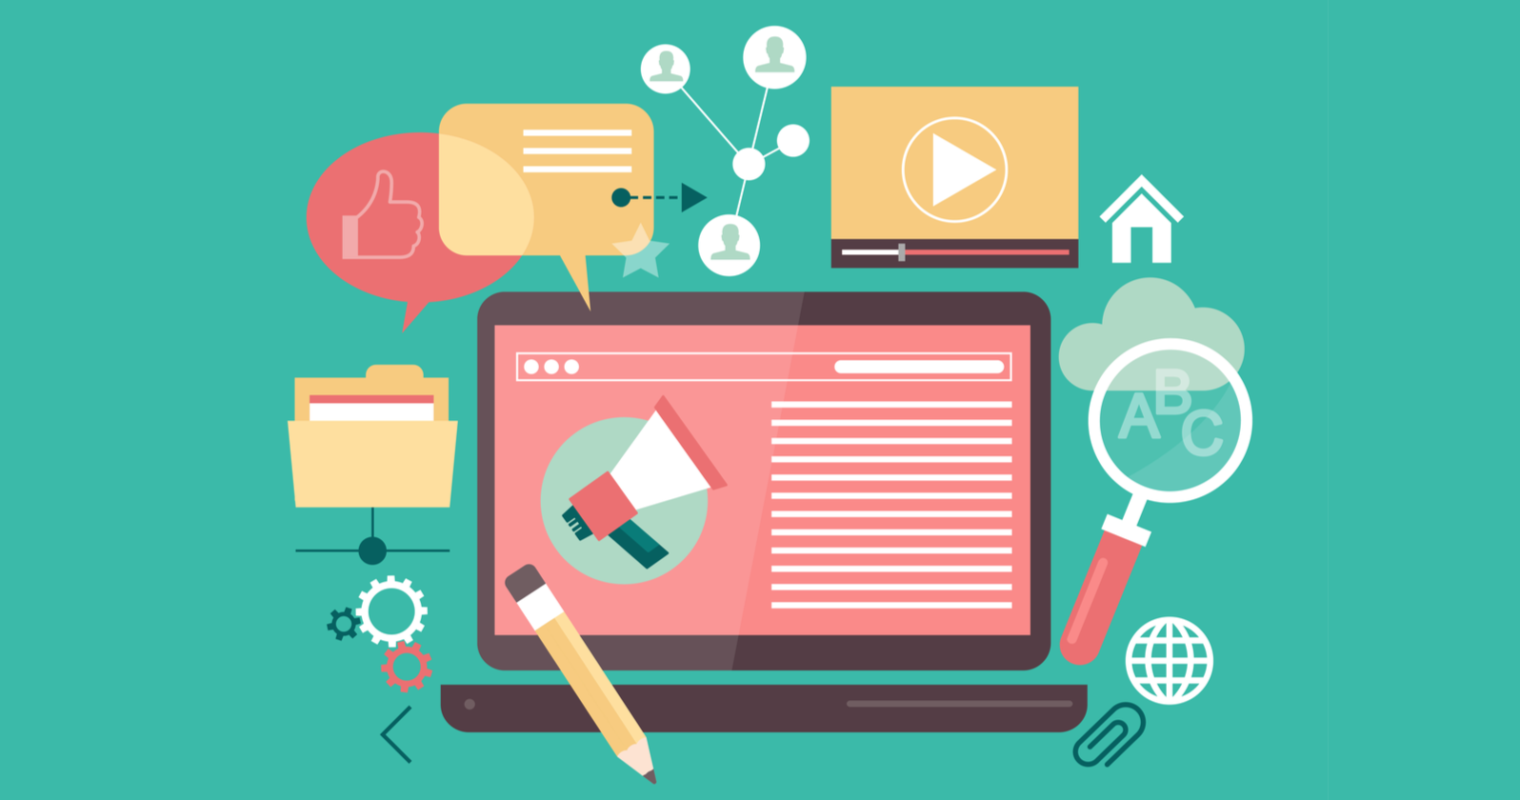 Word Count & SEO: What Content Marketers Need to Consider